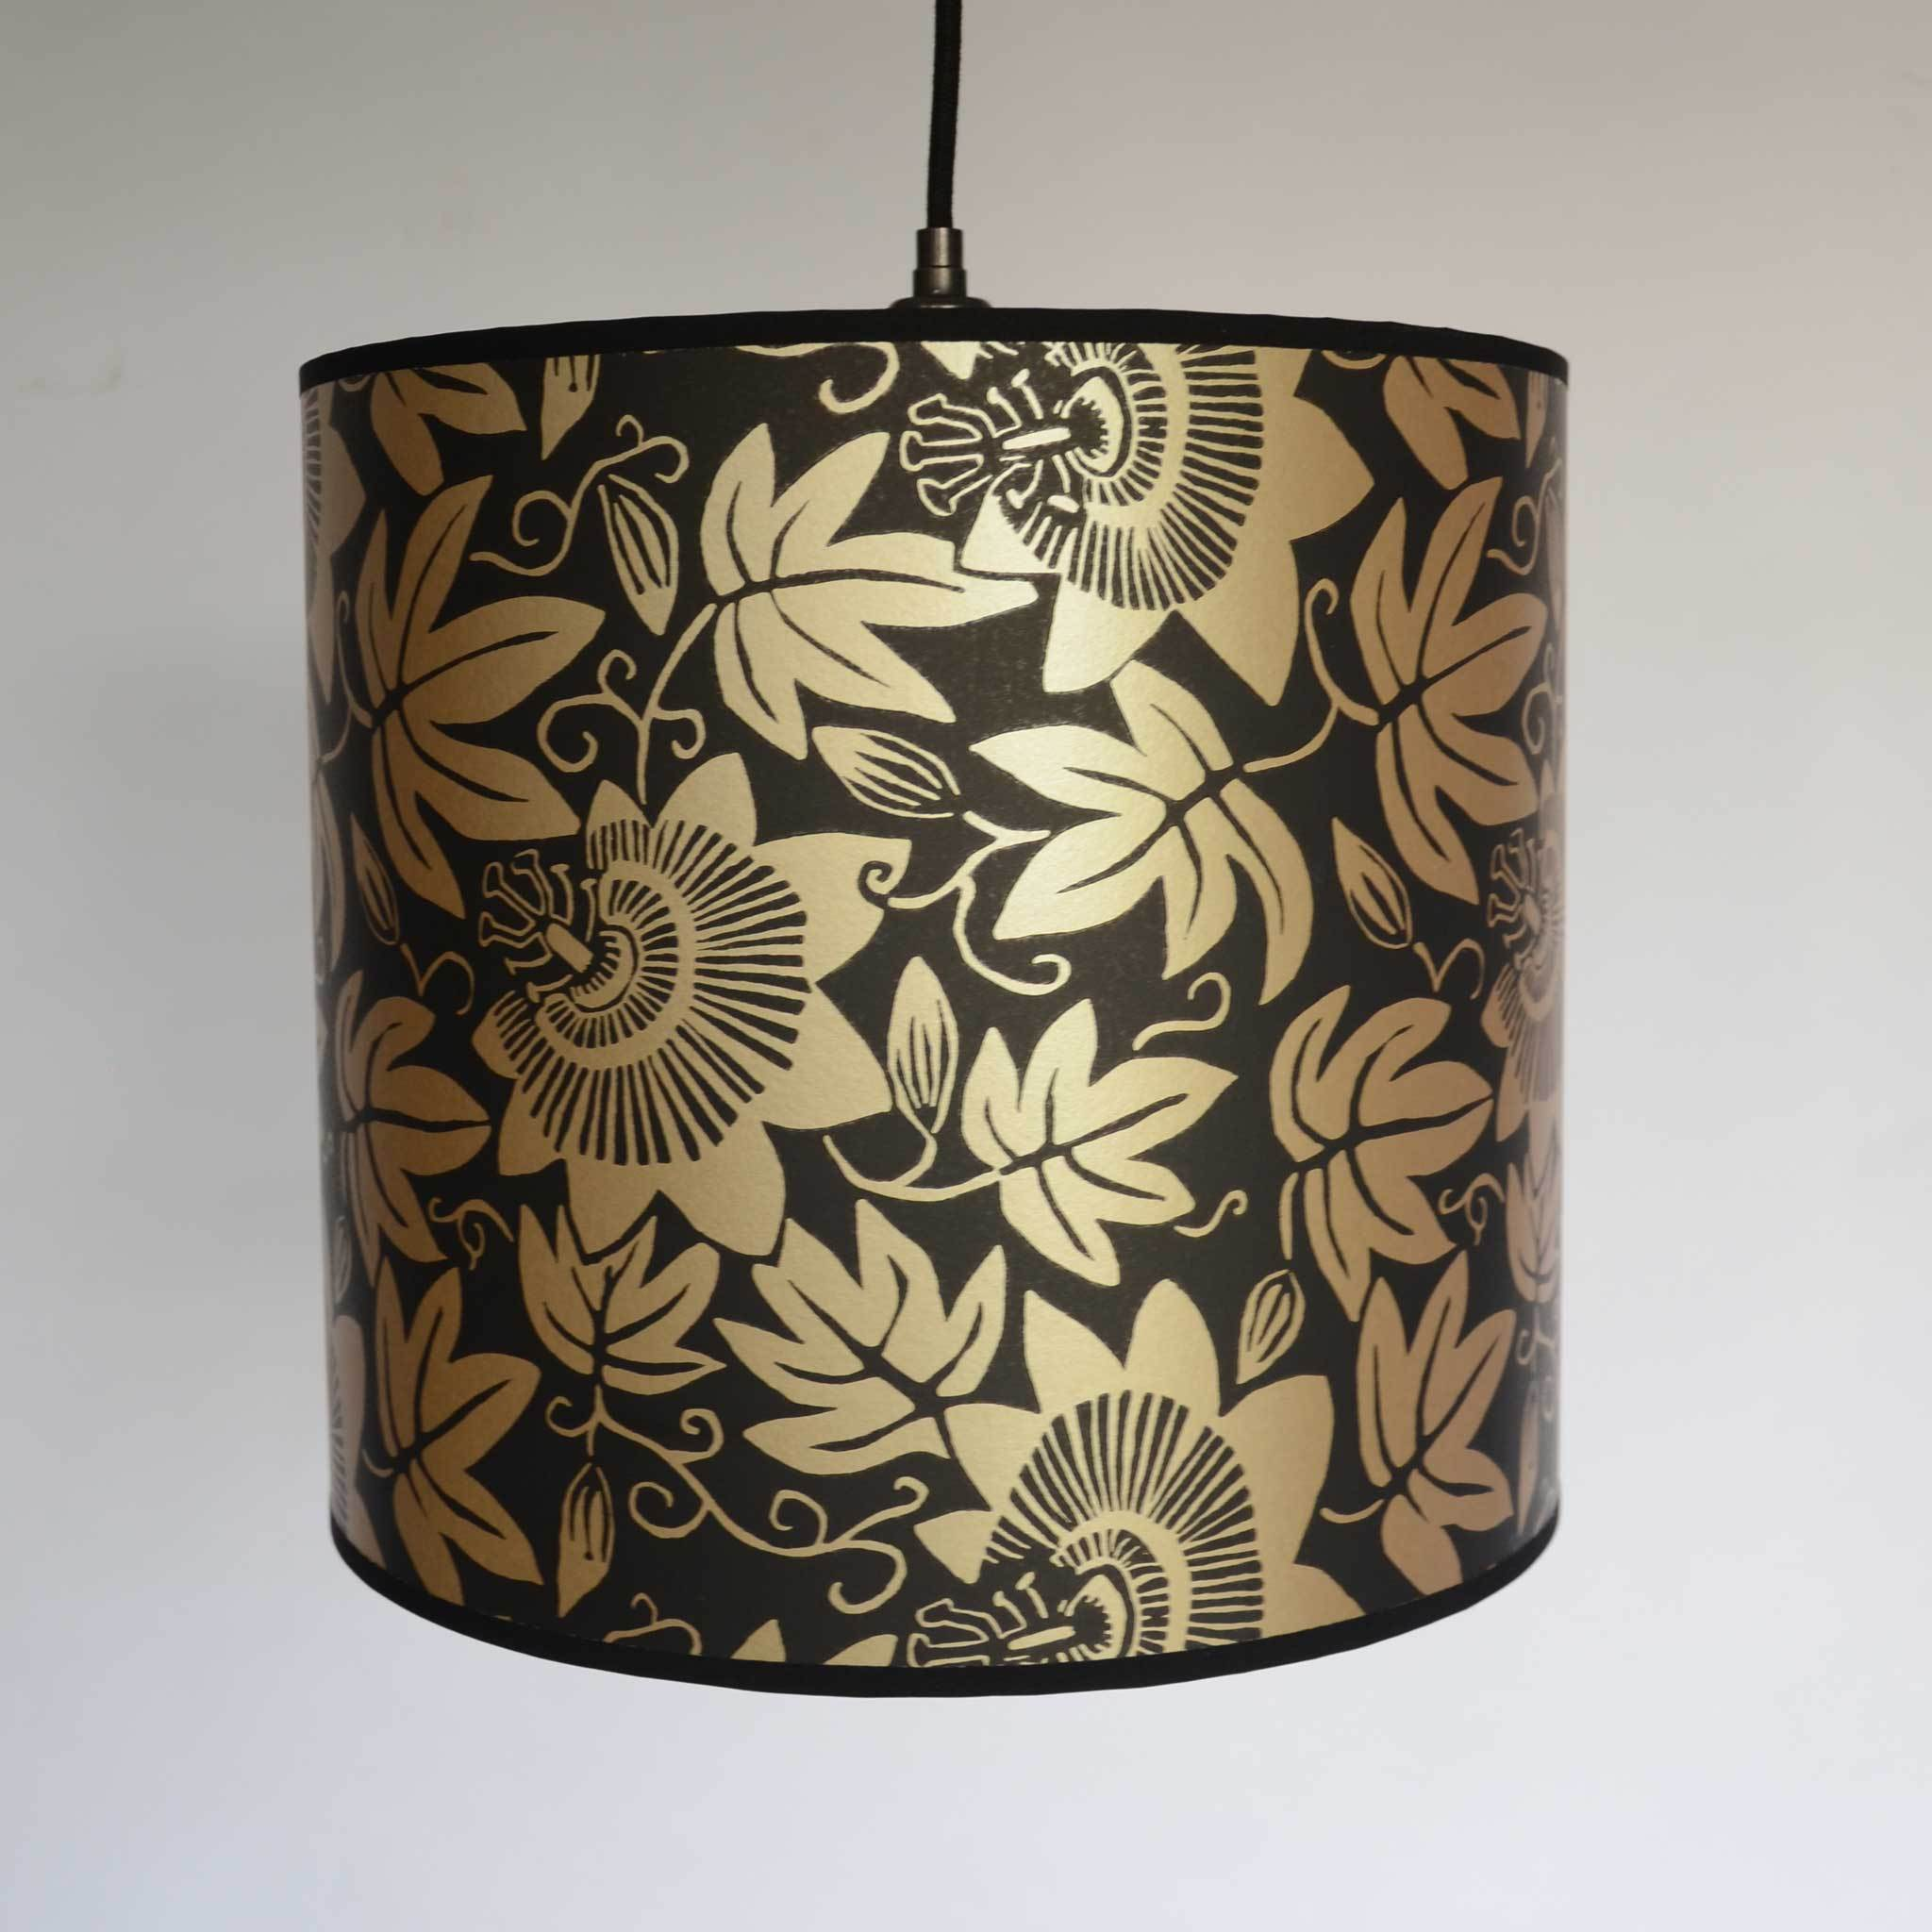 Black and Gold Passion Flower Paper Lampshade